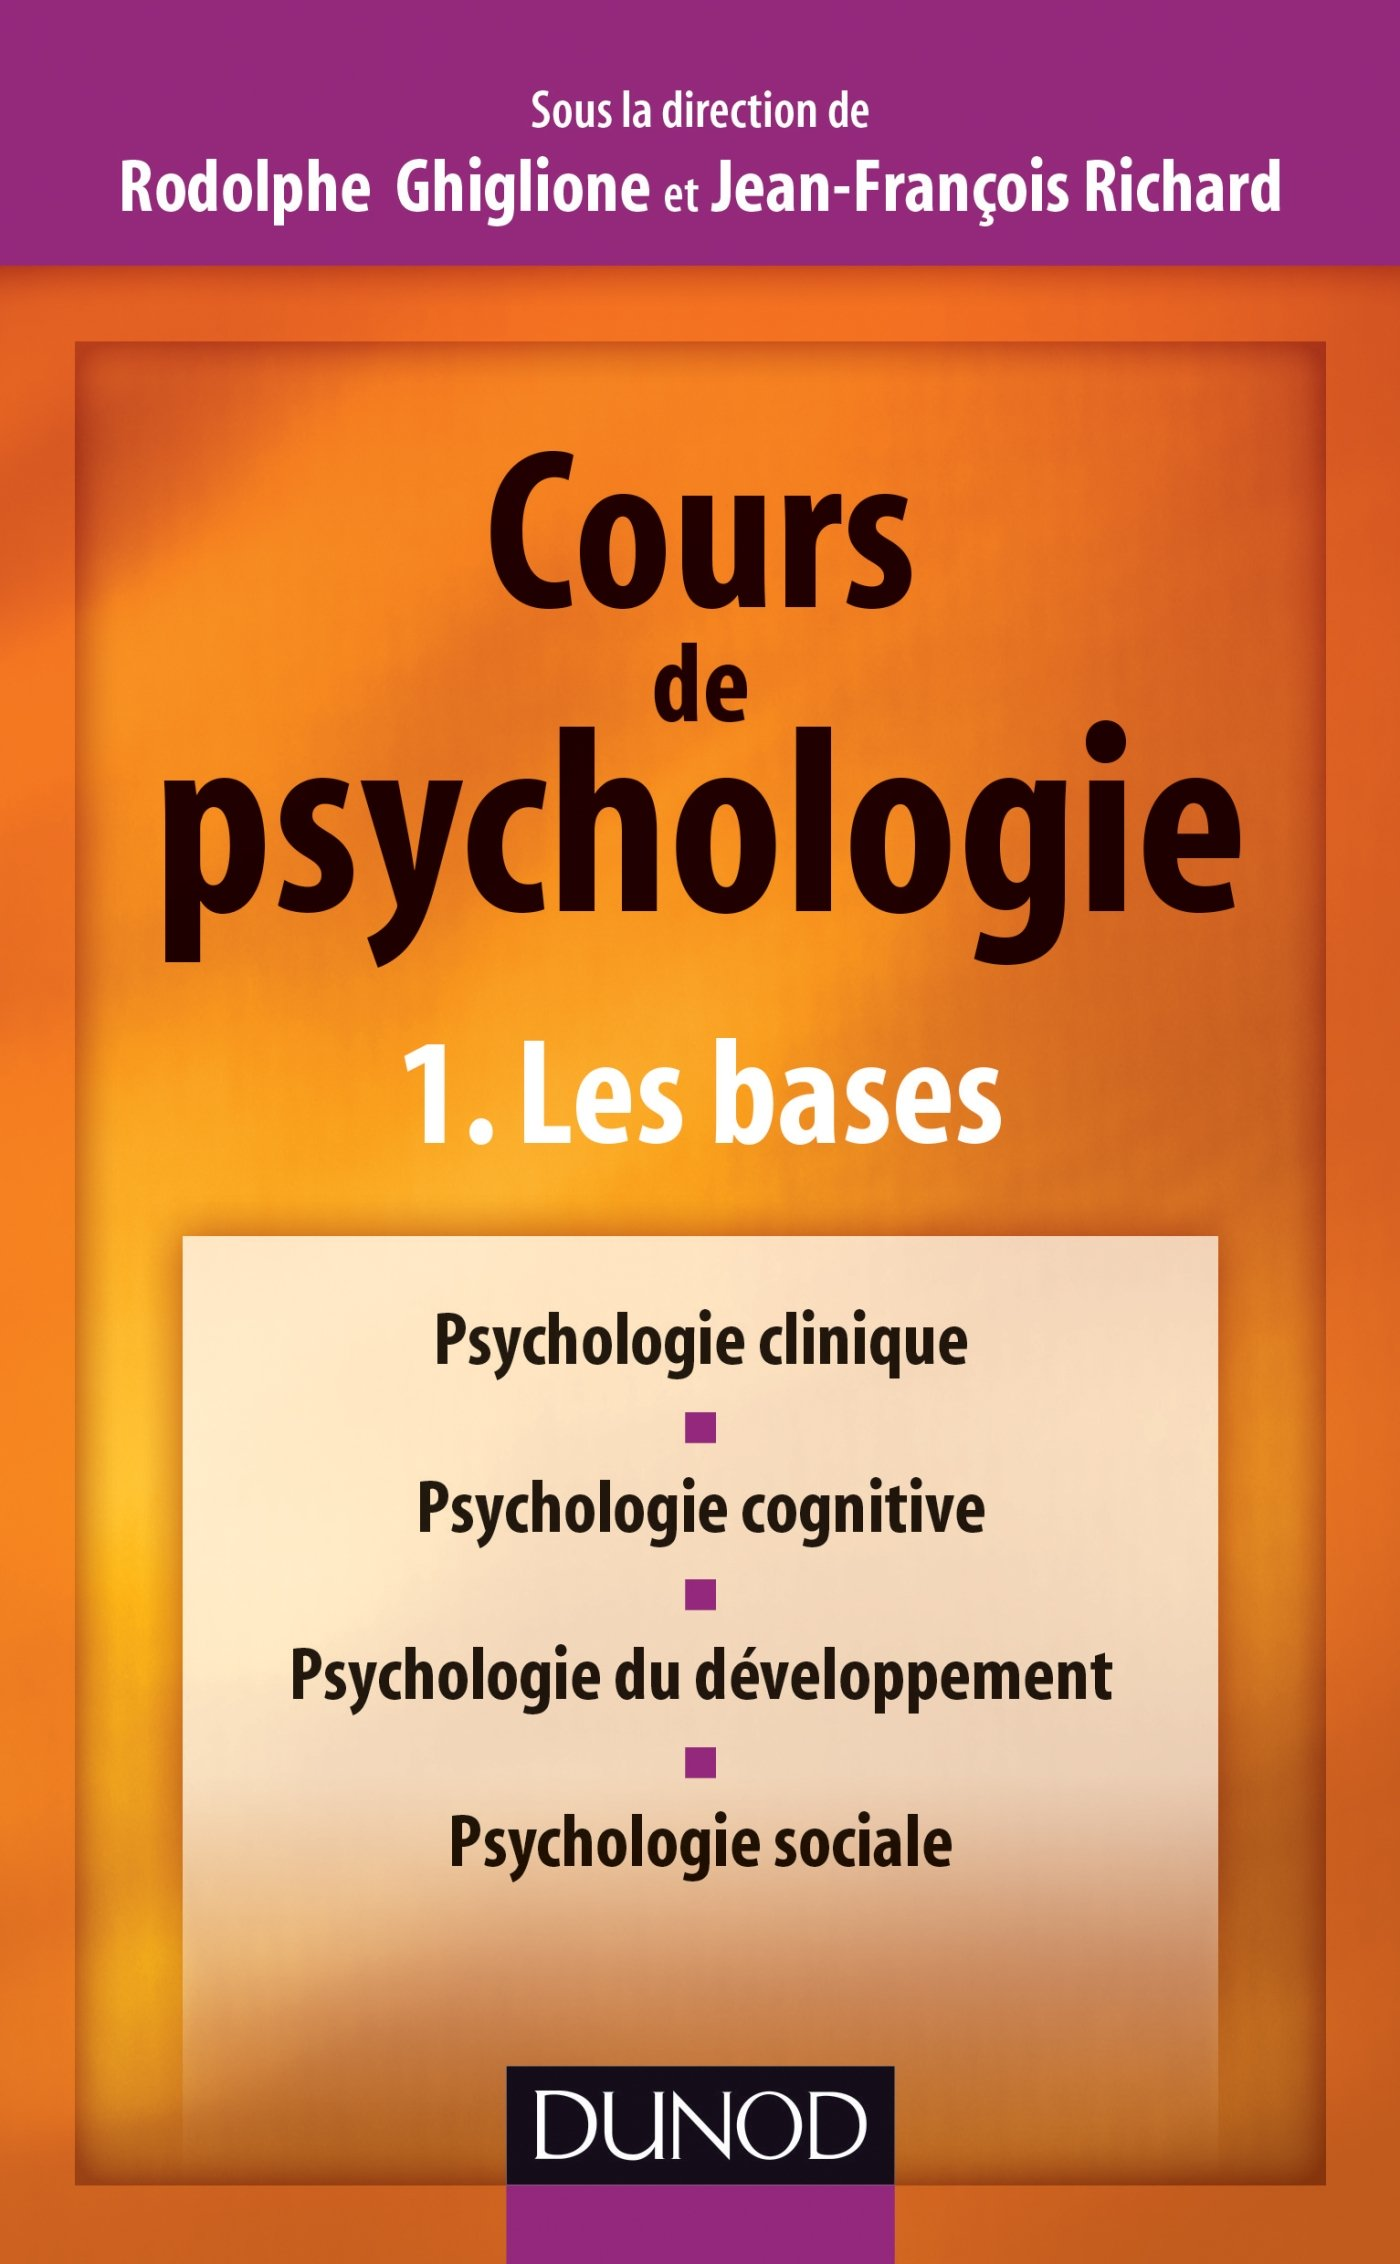 bfe509238b6 Amazon.fr - Cours de psychologie - Tome 1 - Les bases - Rodolphe Ghiglione